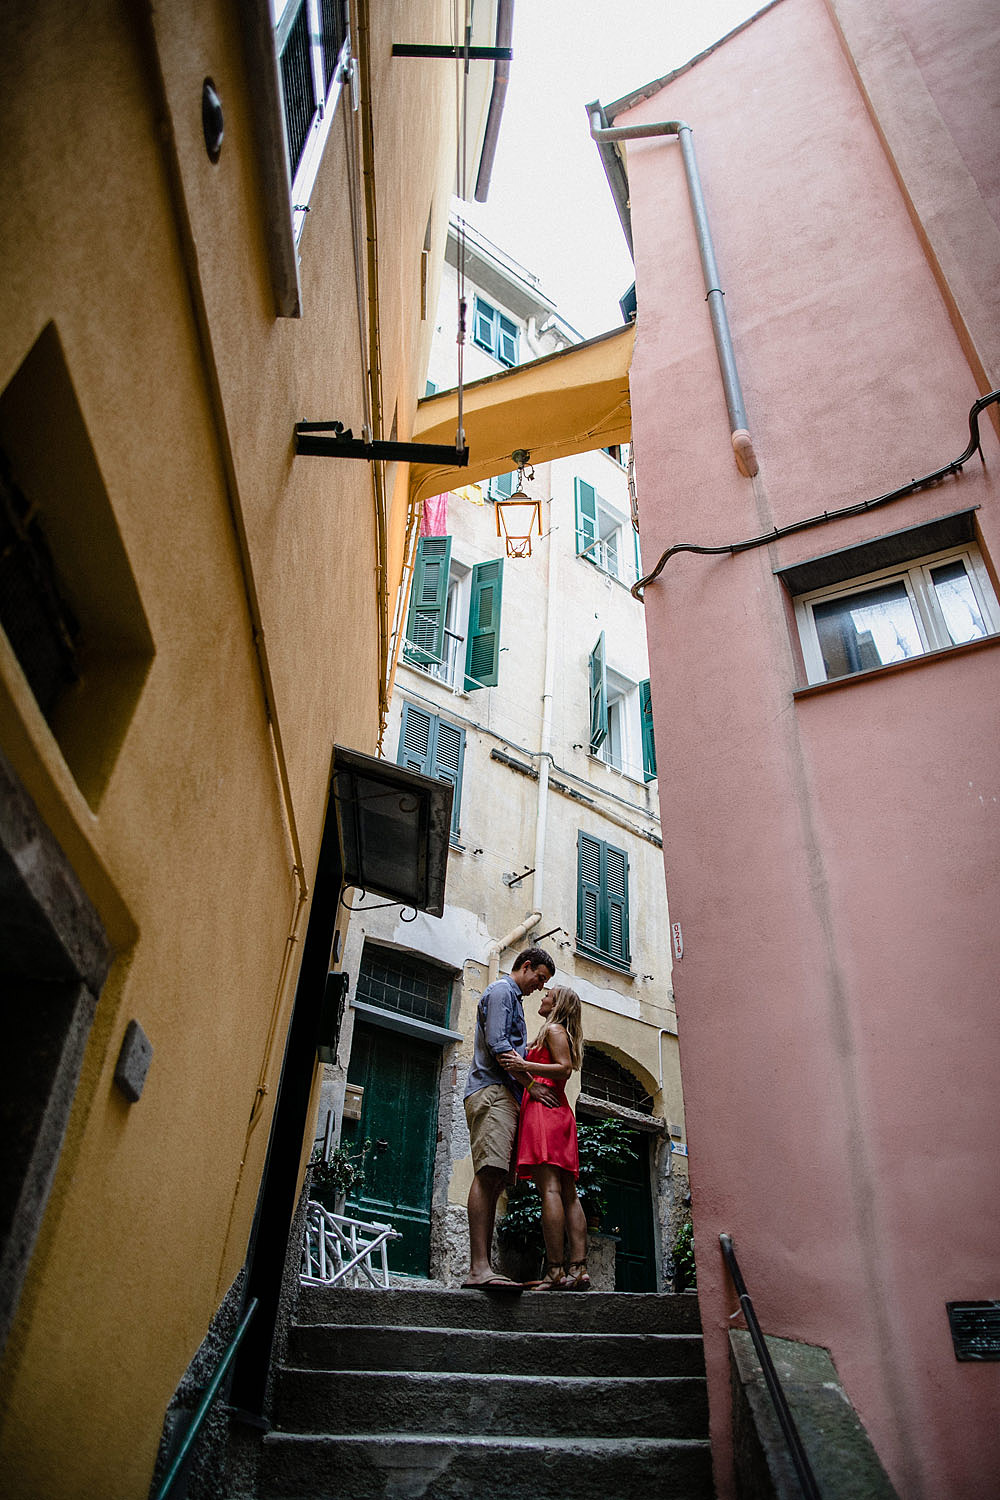 WEDDING ANNIVERSARY IN THE MAGNIFICENT CINQUE TERRE